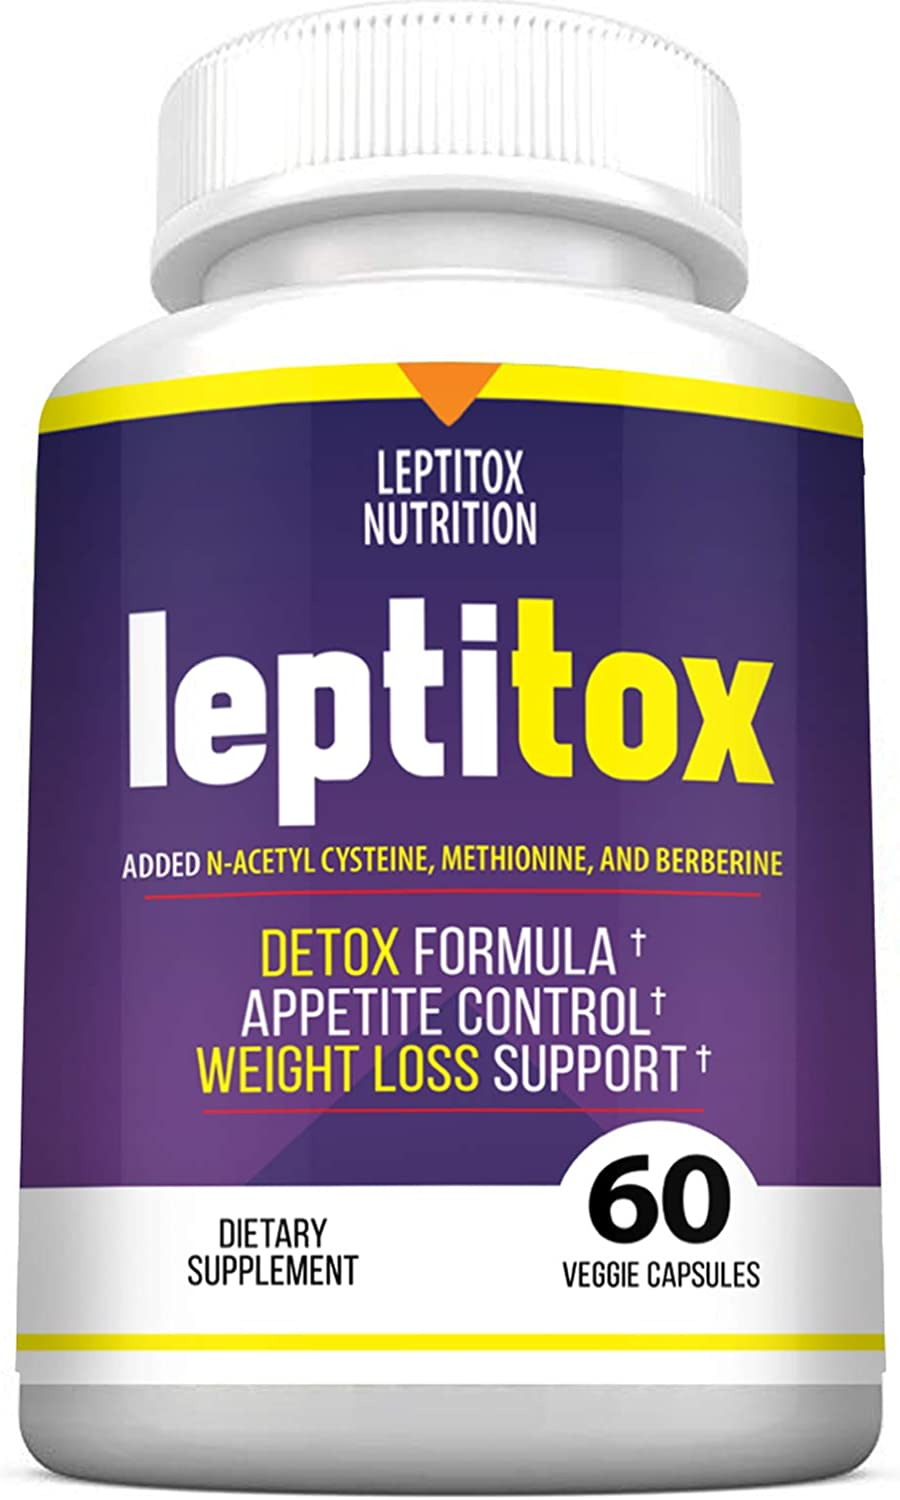 Leptitox Coupon Code Military Discount 2020